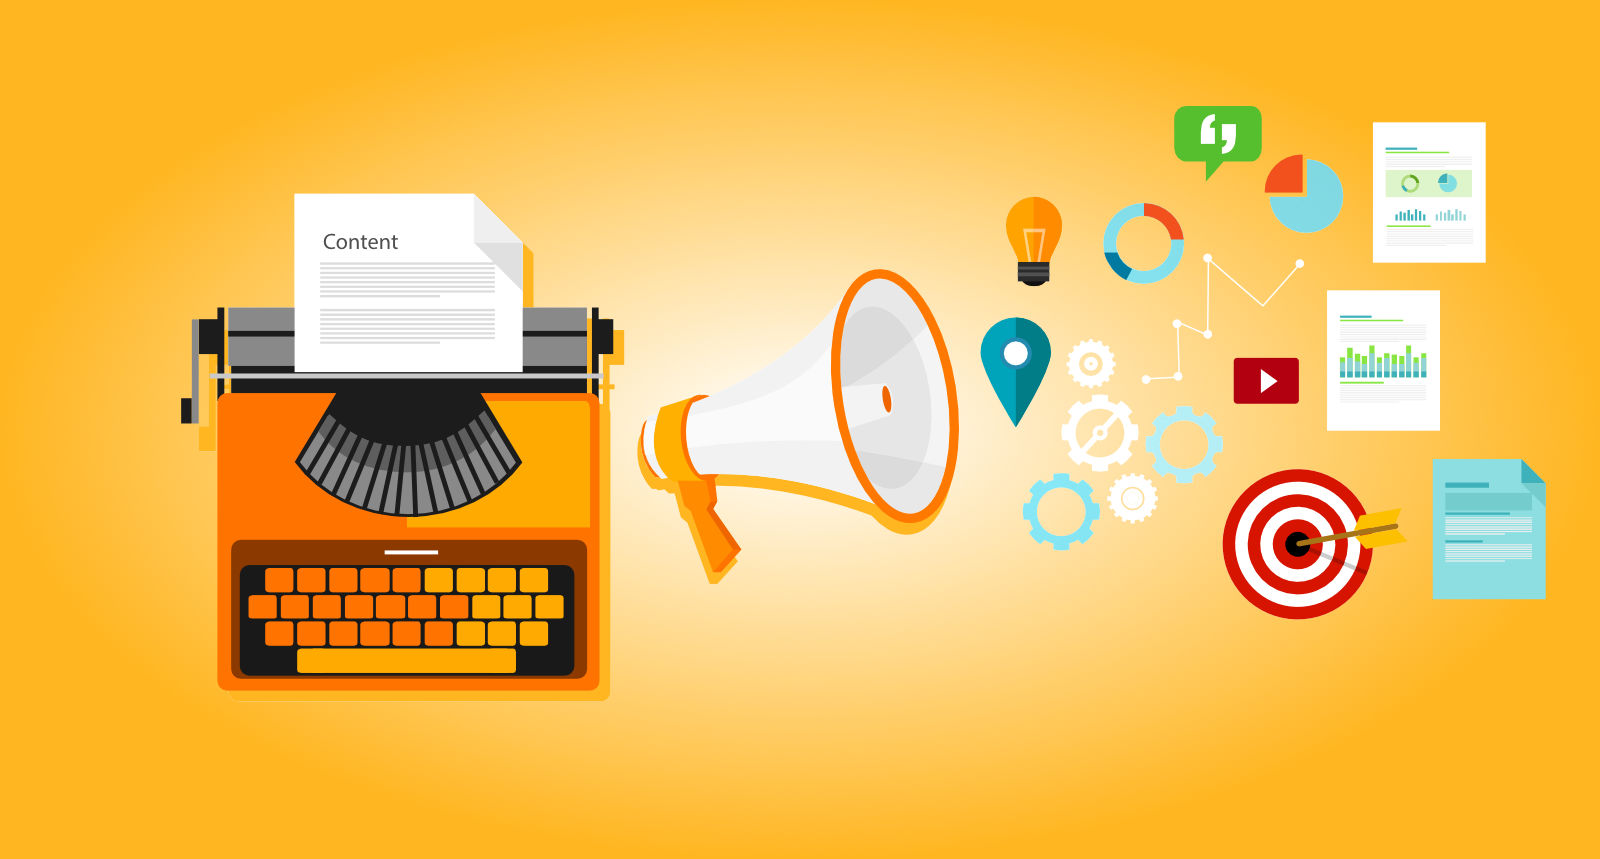 At the heart of digital marketing strategy is content marketing